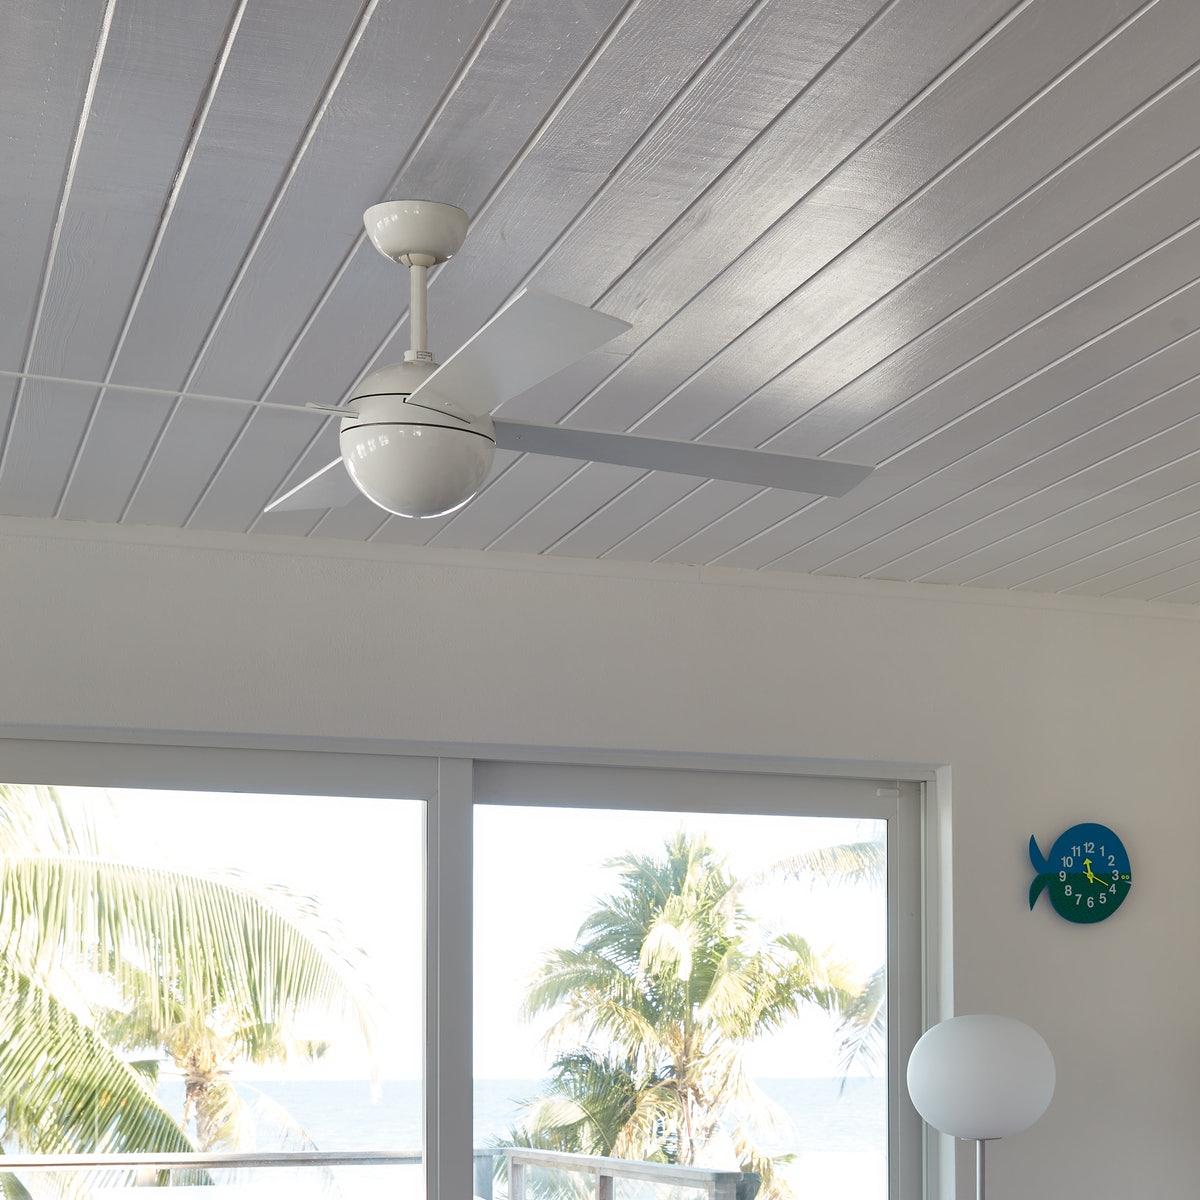 Ball Ceiling Fan with Remote